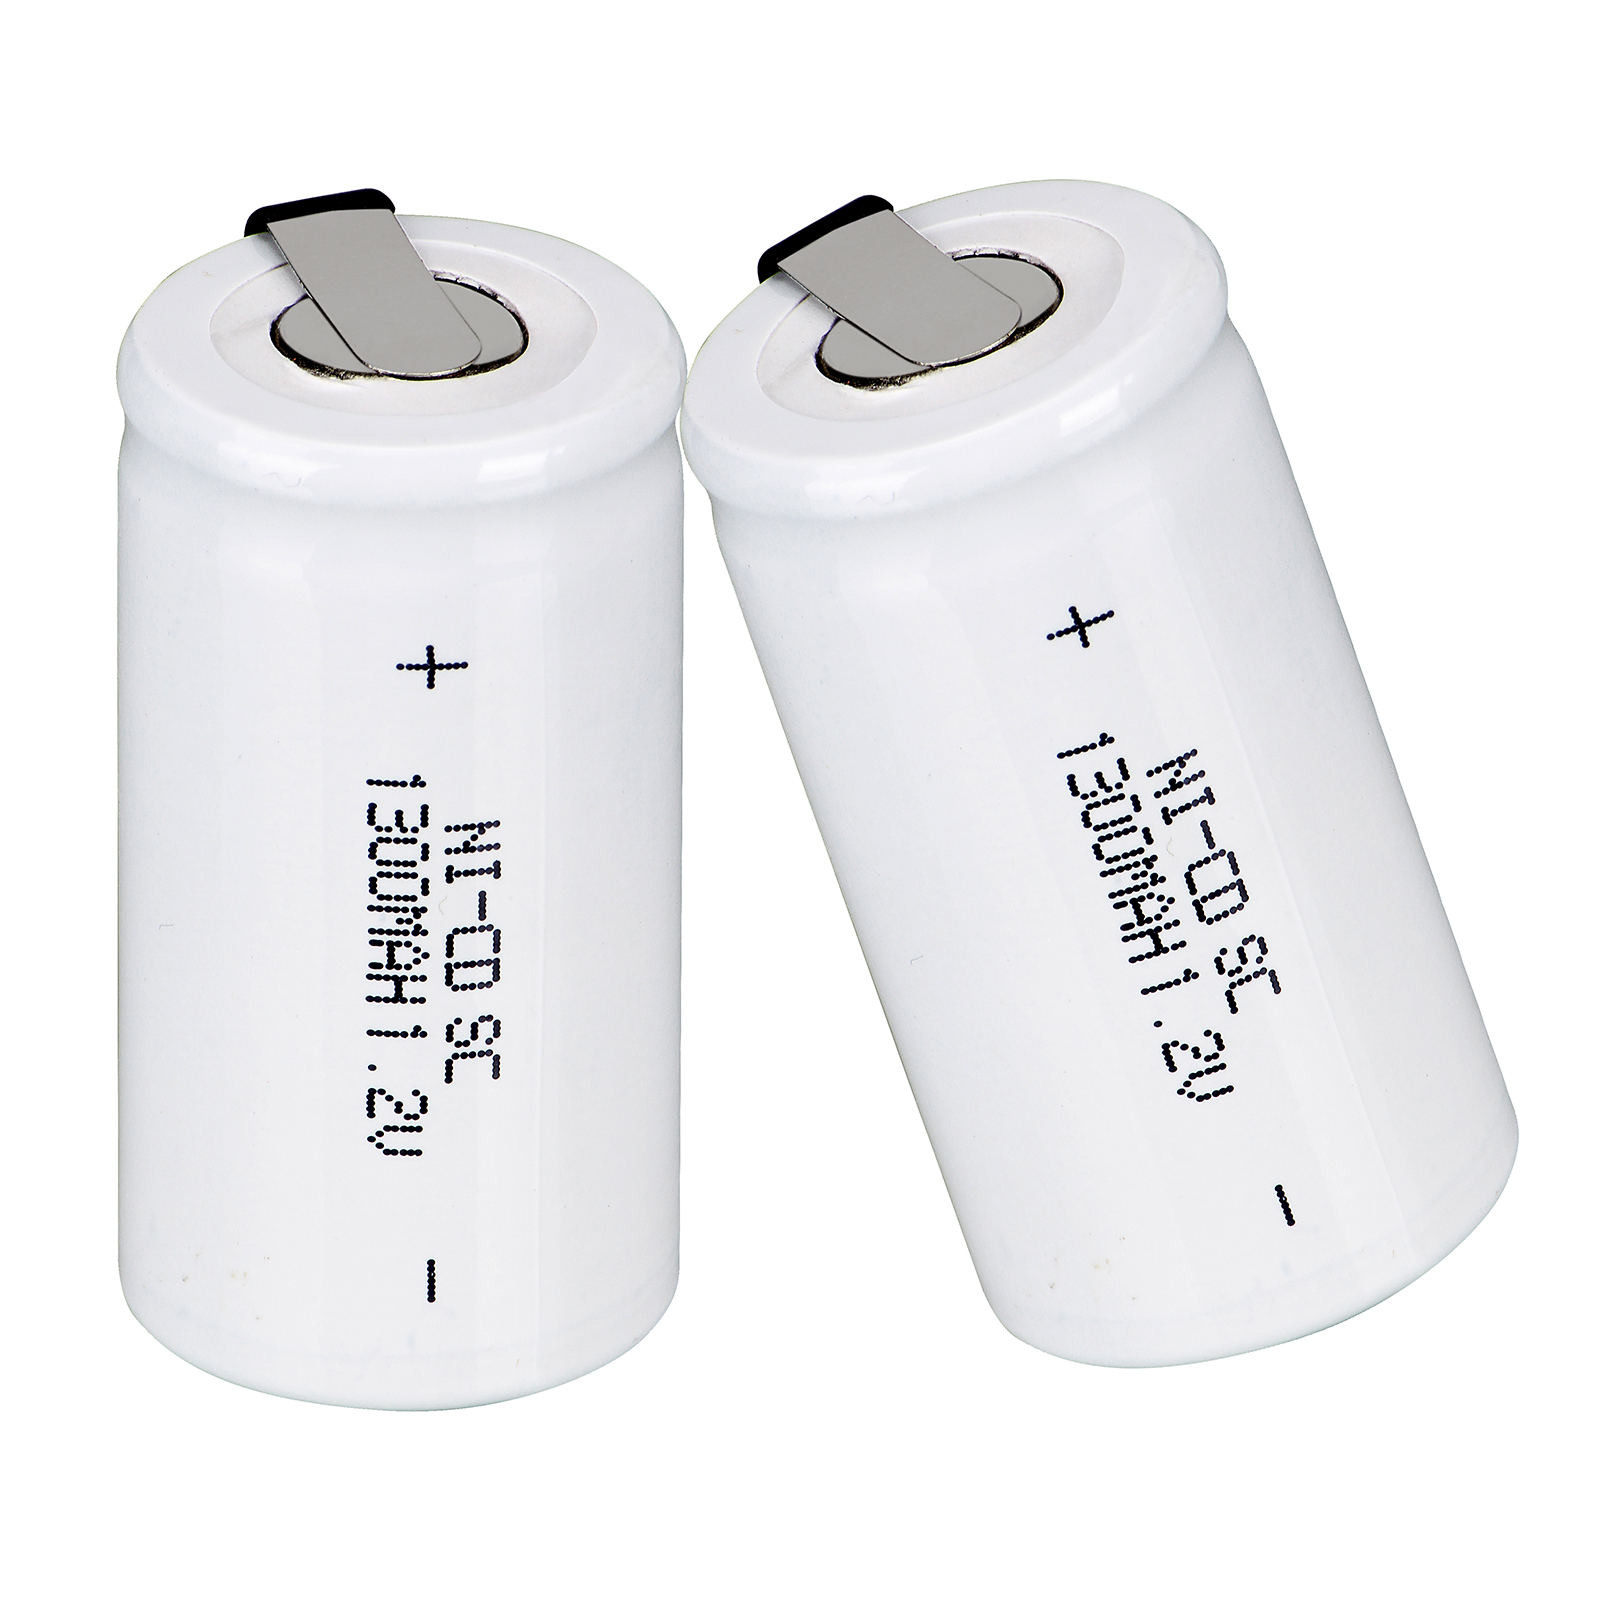 2~16PCS Sub C SC nicd 1.2V 1300mAh Rechargeable Batteries <font><b>ni</b></font>-<font><b>cd</b></font> <font><b>1.2</b></font> <font><b>v</b></font> Rechargeable Battery 4.25*2.2cm image